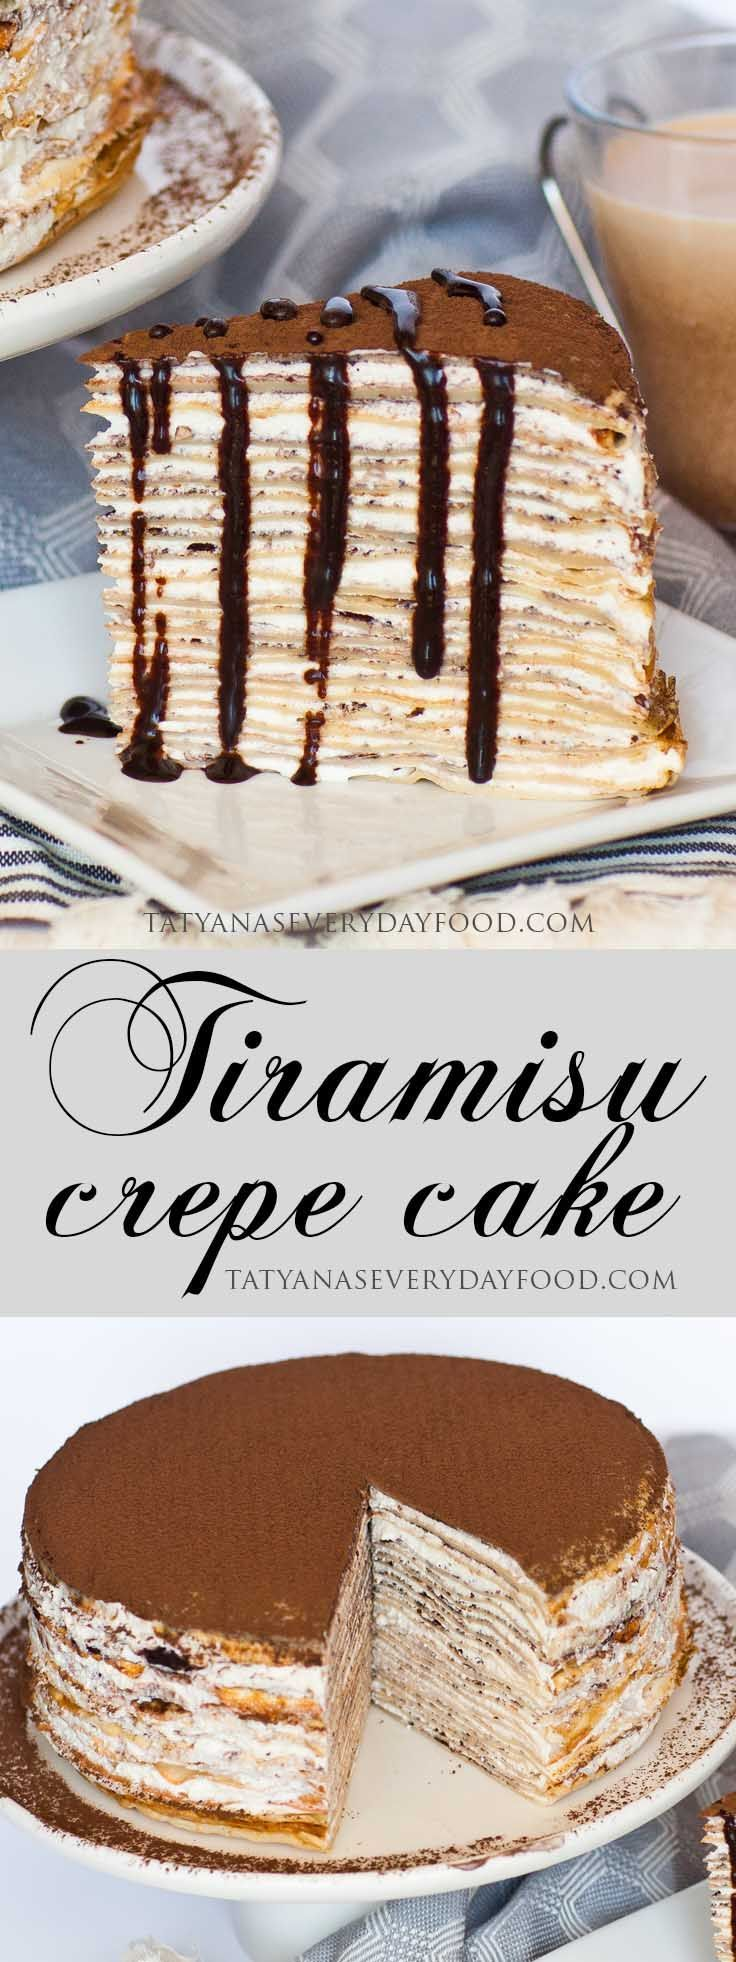 If you love Tiramisu and crepes, you're going to love my 'Tiramisu Crepe Cake'! I make this cake with delicate, coffee-flavored crepes and fill it with a fluffy whipped cream frosting. Once you cut into the cake, the cake layers speak for themselves; a simple and elegant finish is all the cake needs! This cake […]